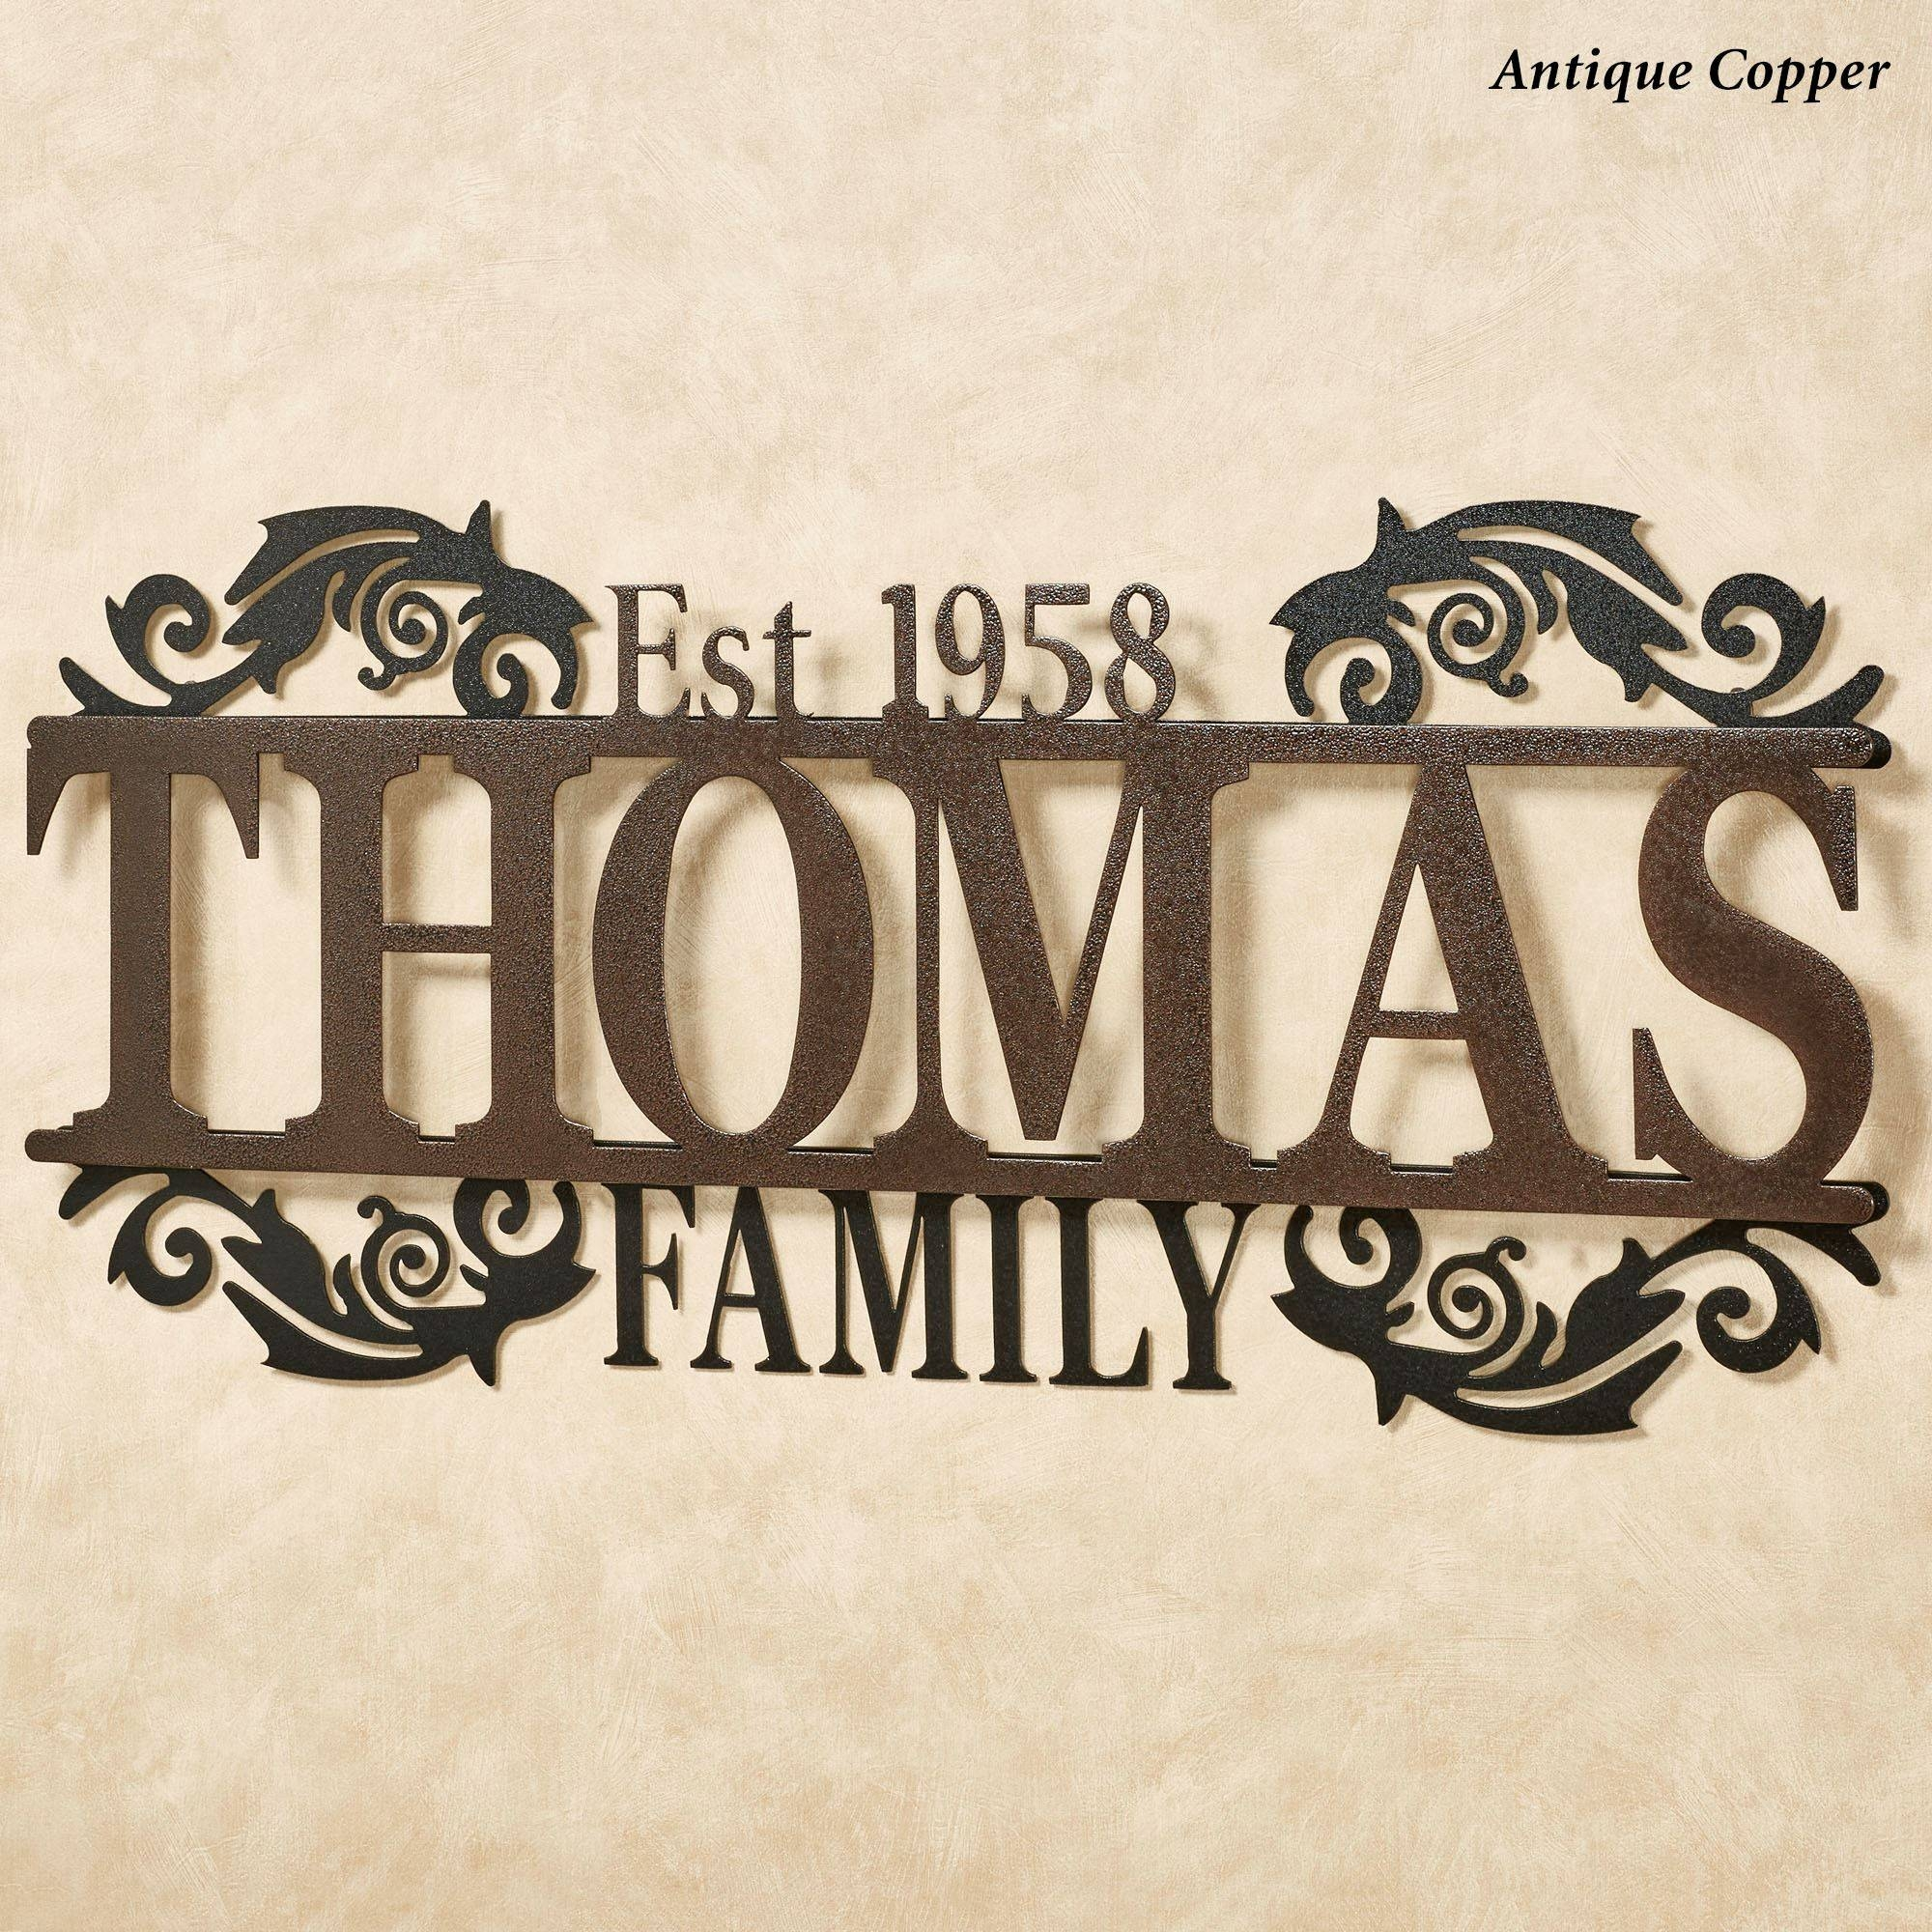 Legacy Family Established Year Personalized Metal Wall Art Sign Inside Latest Personalized Metal Wall Art (View 9 of 20)